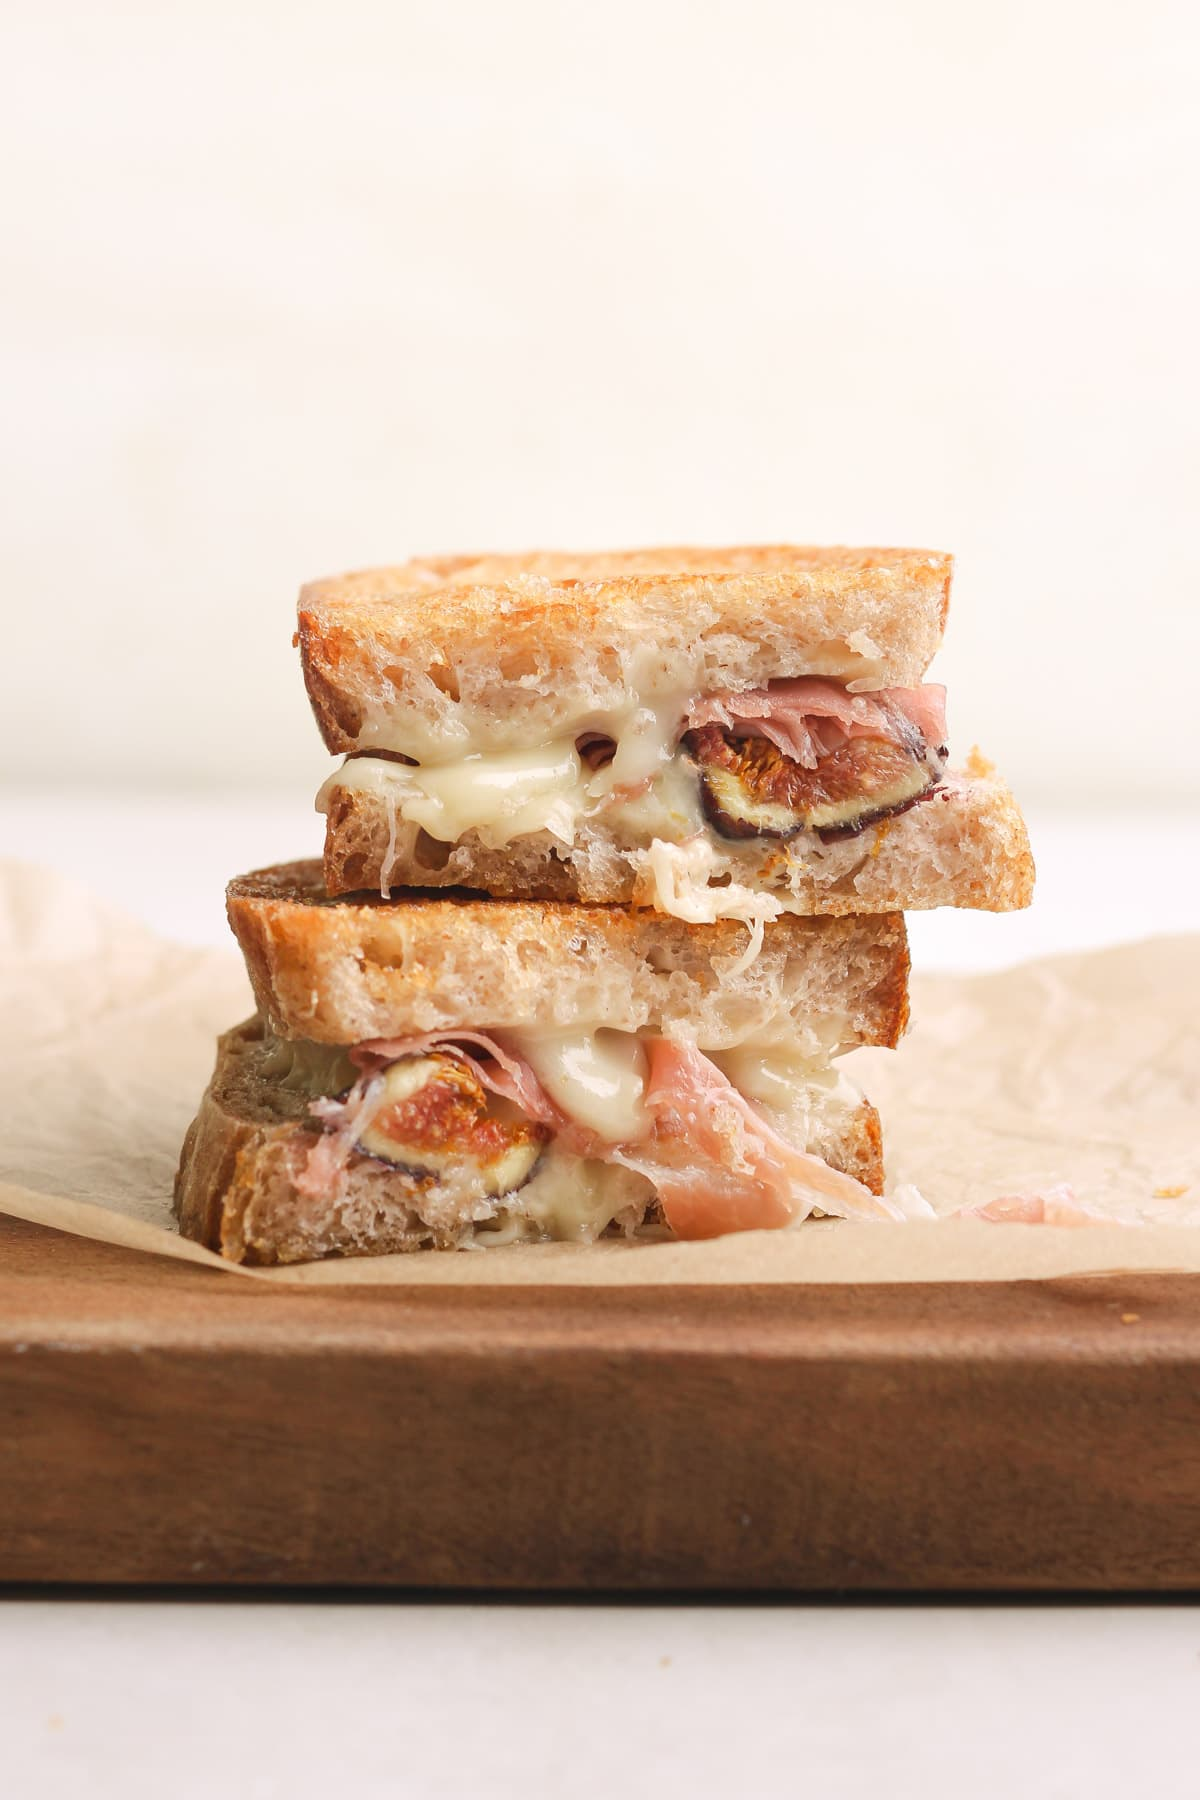 Straight on view of a Prosciutto Grilled Cheese with Figs and taleggio sliced in half and stack on top of itself on a wood cutting board.